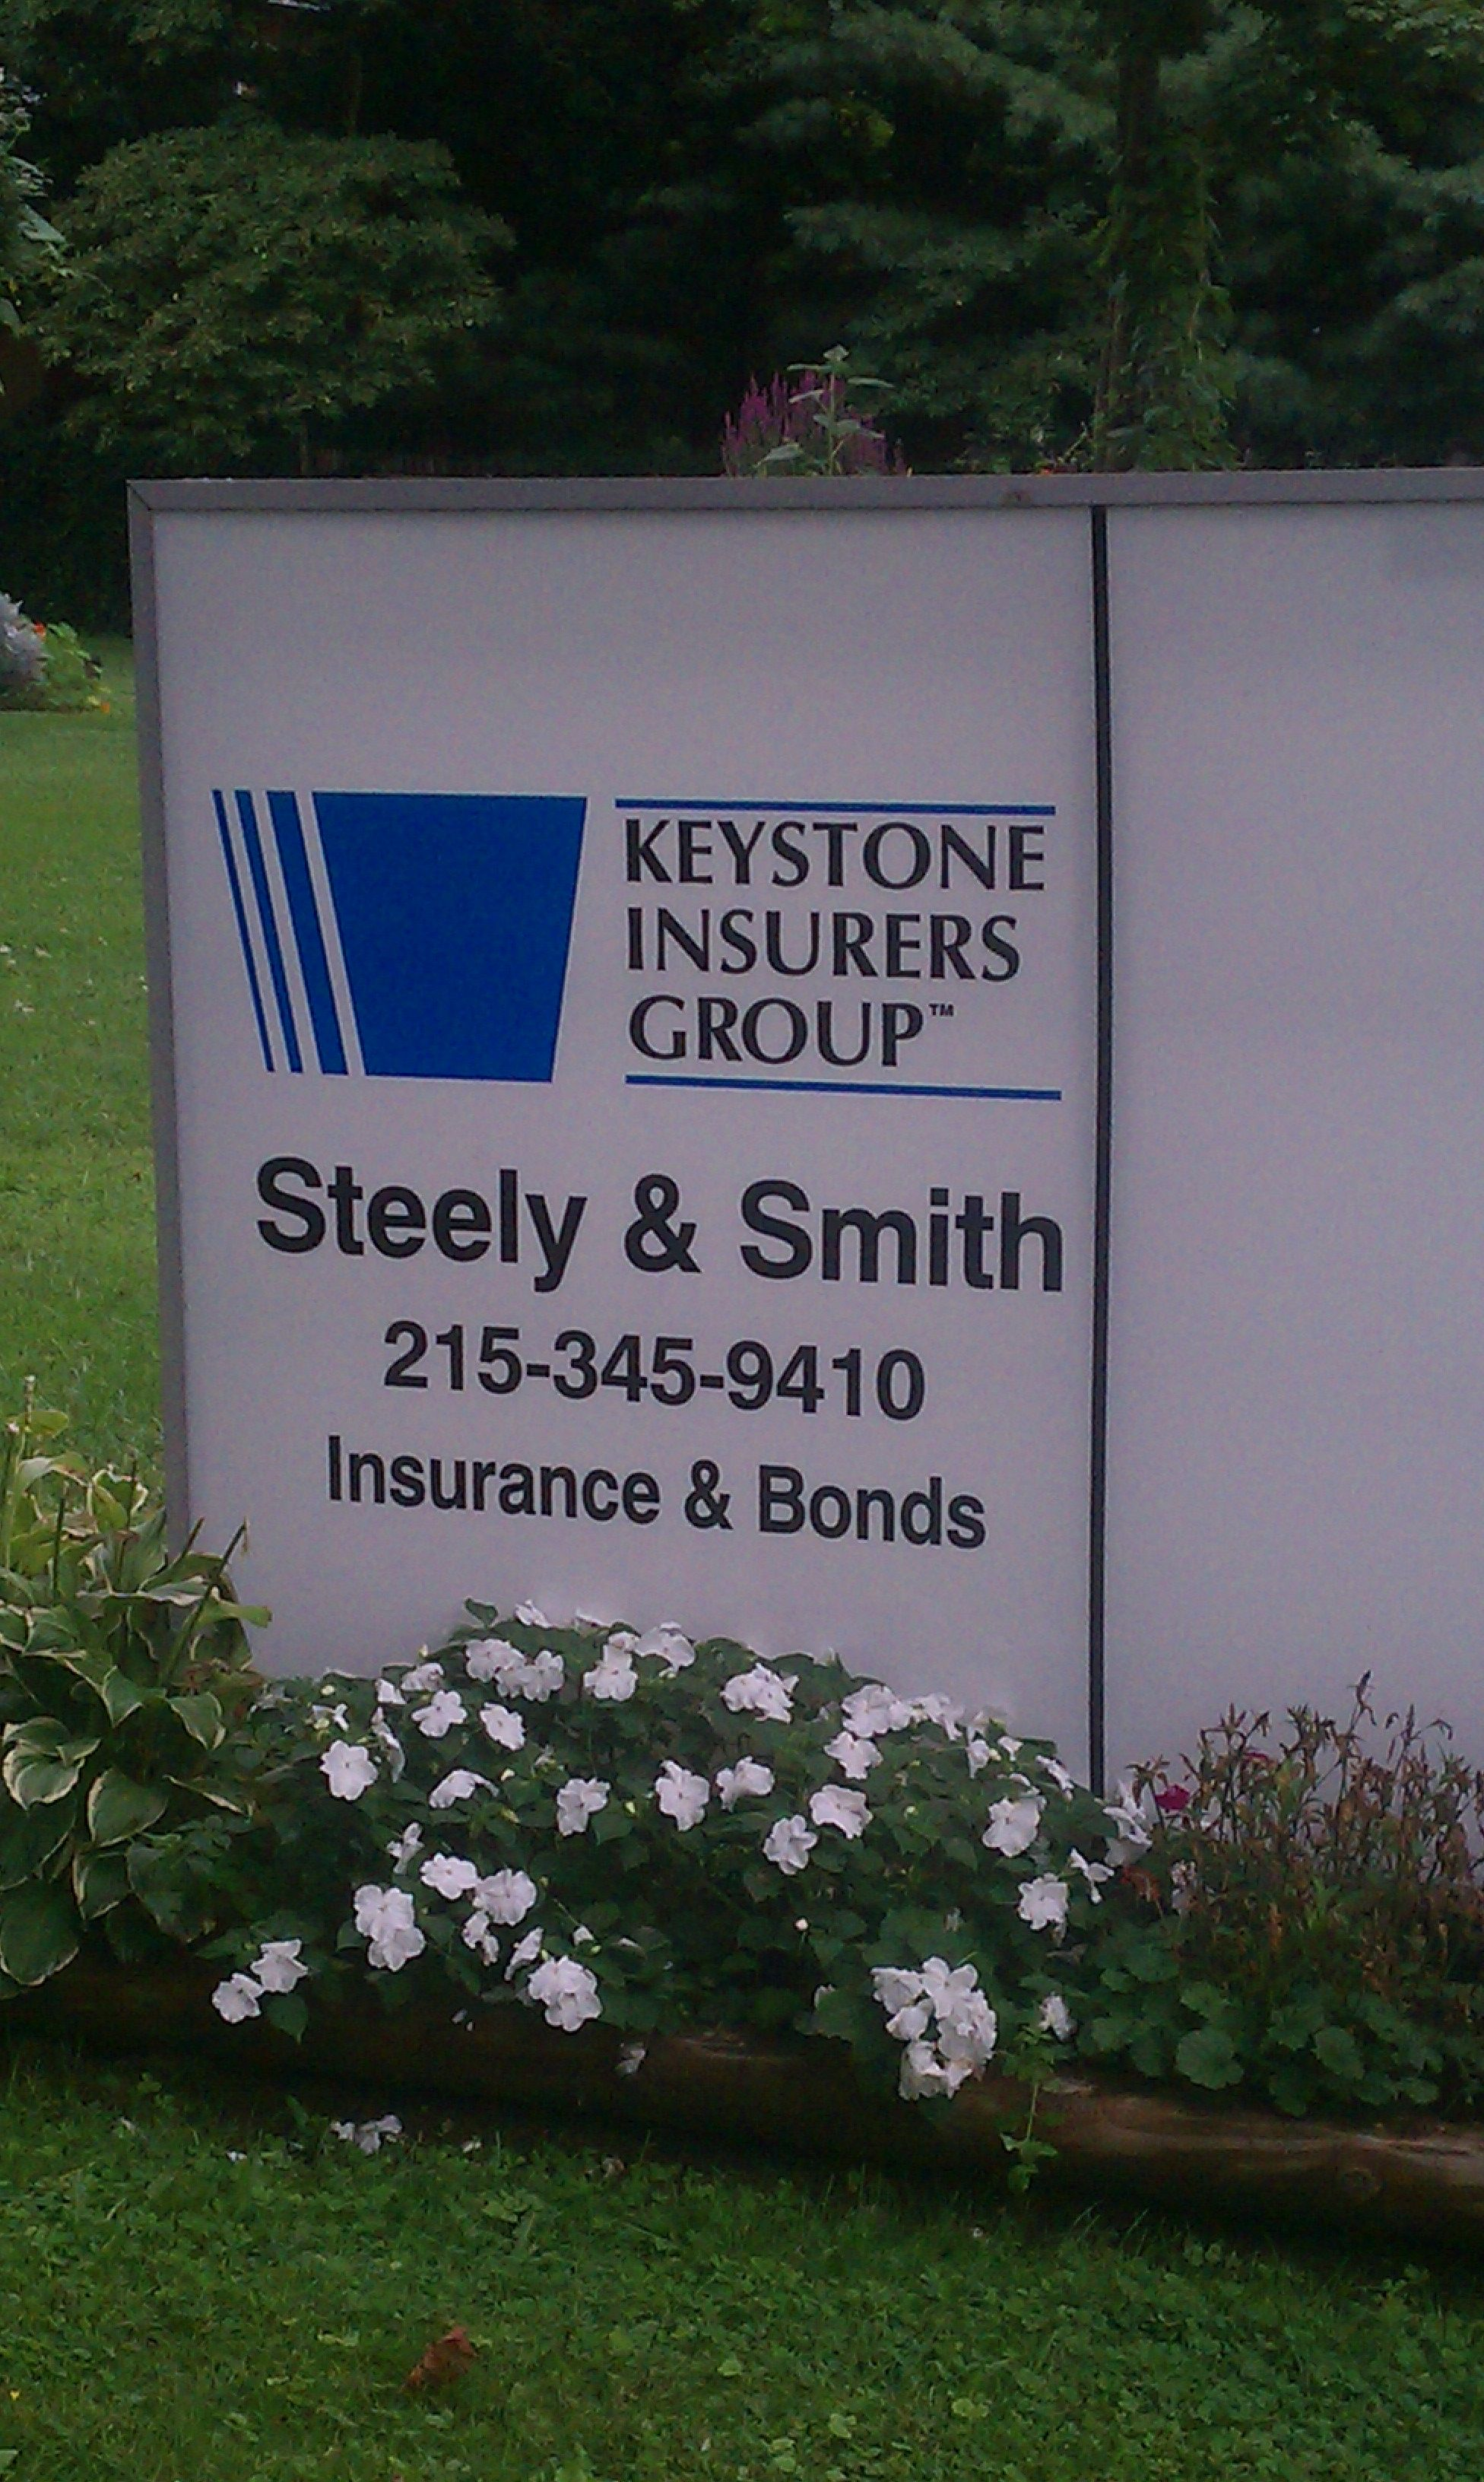 http://steelyandsmith.com/the-importance-of-homeowners-insurance - Steely & Smith can take care of all your homeowner's insurance needs.